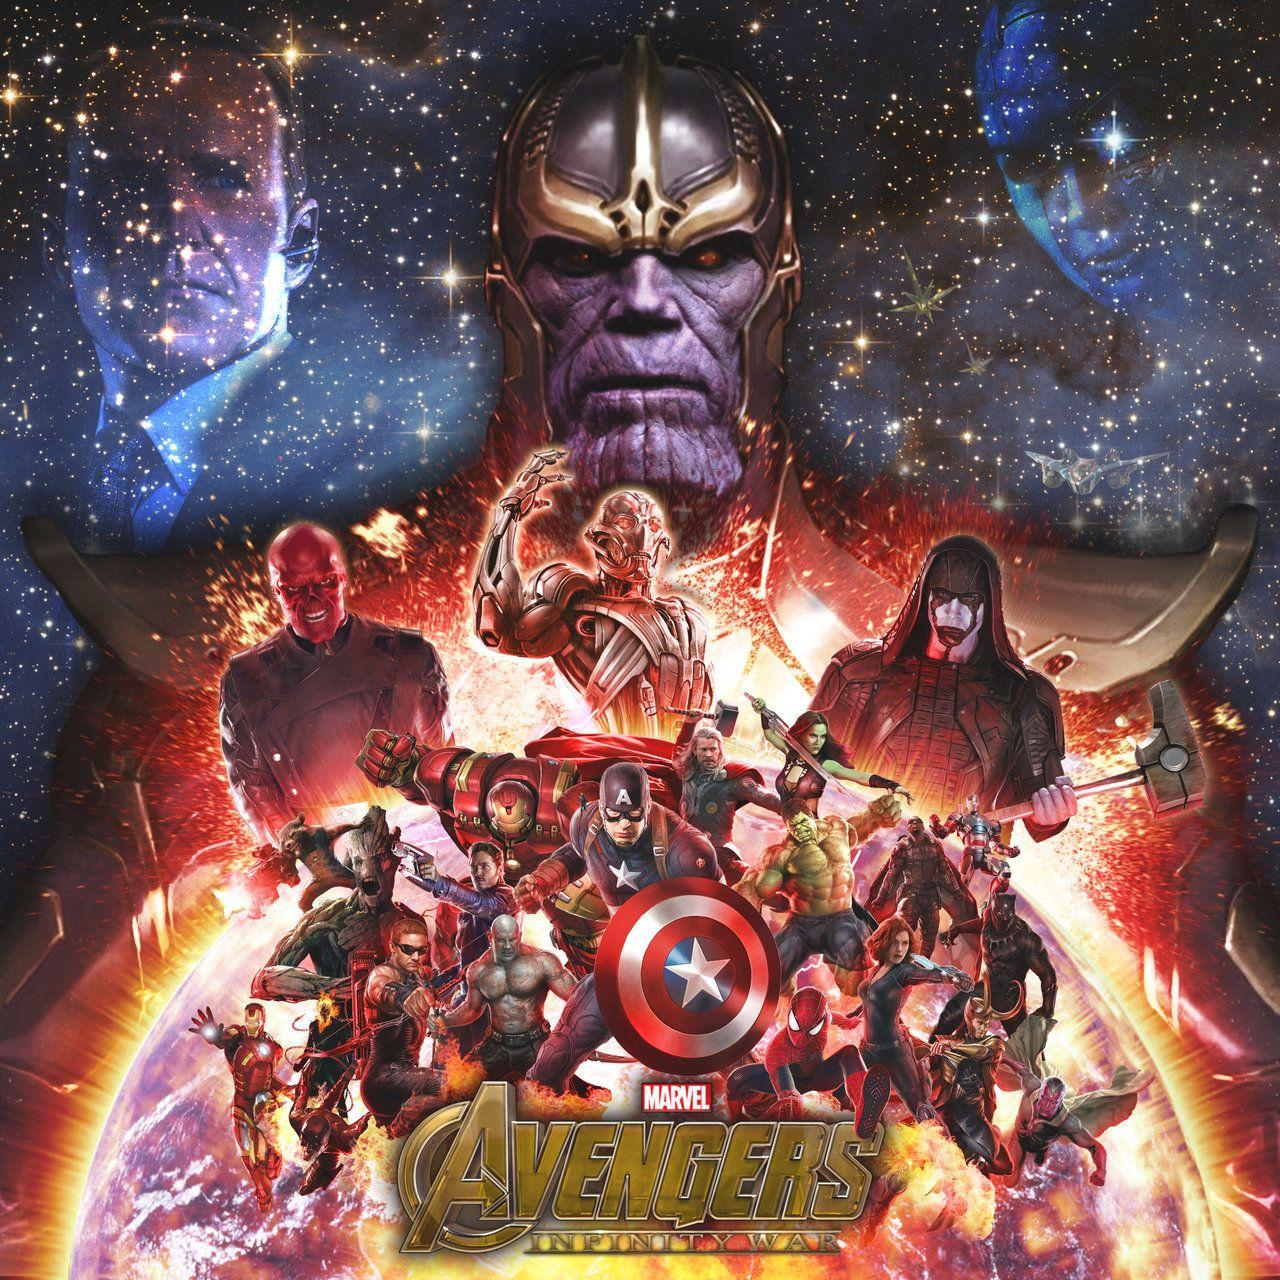 Can we talk about Avengers Infinity War a bit? - NeoGAF